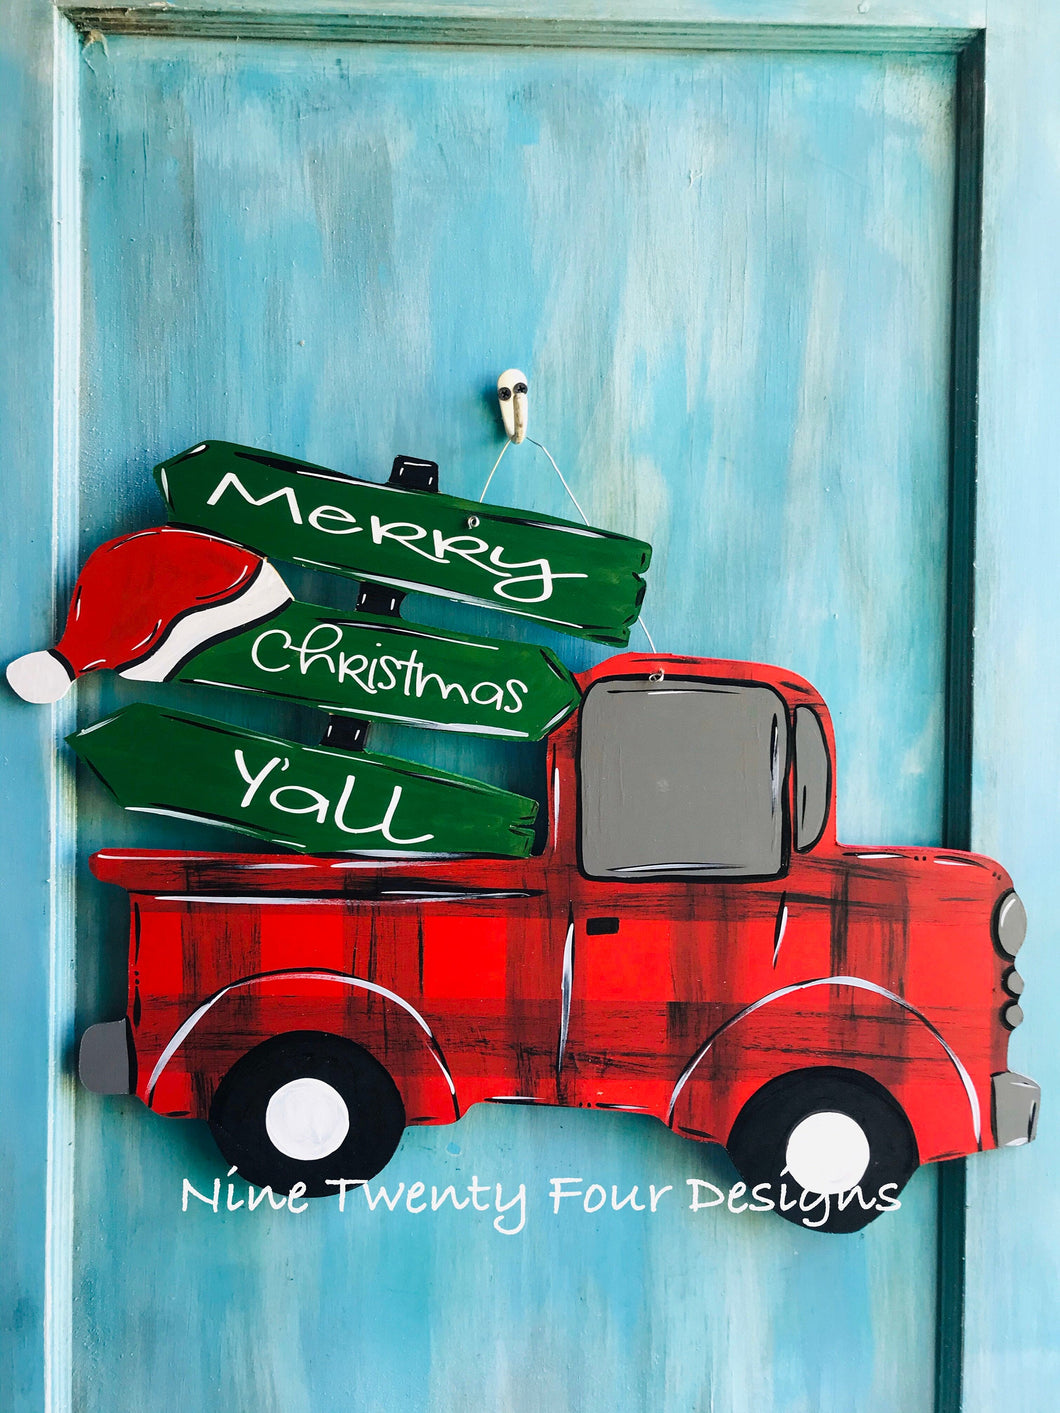 Red Truck, truck door hanger, Christmas decor, Christmas truck, holiday decor, porch decor, outdoor decor, holiday decoration